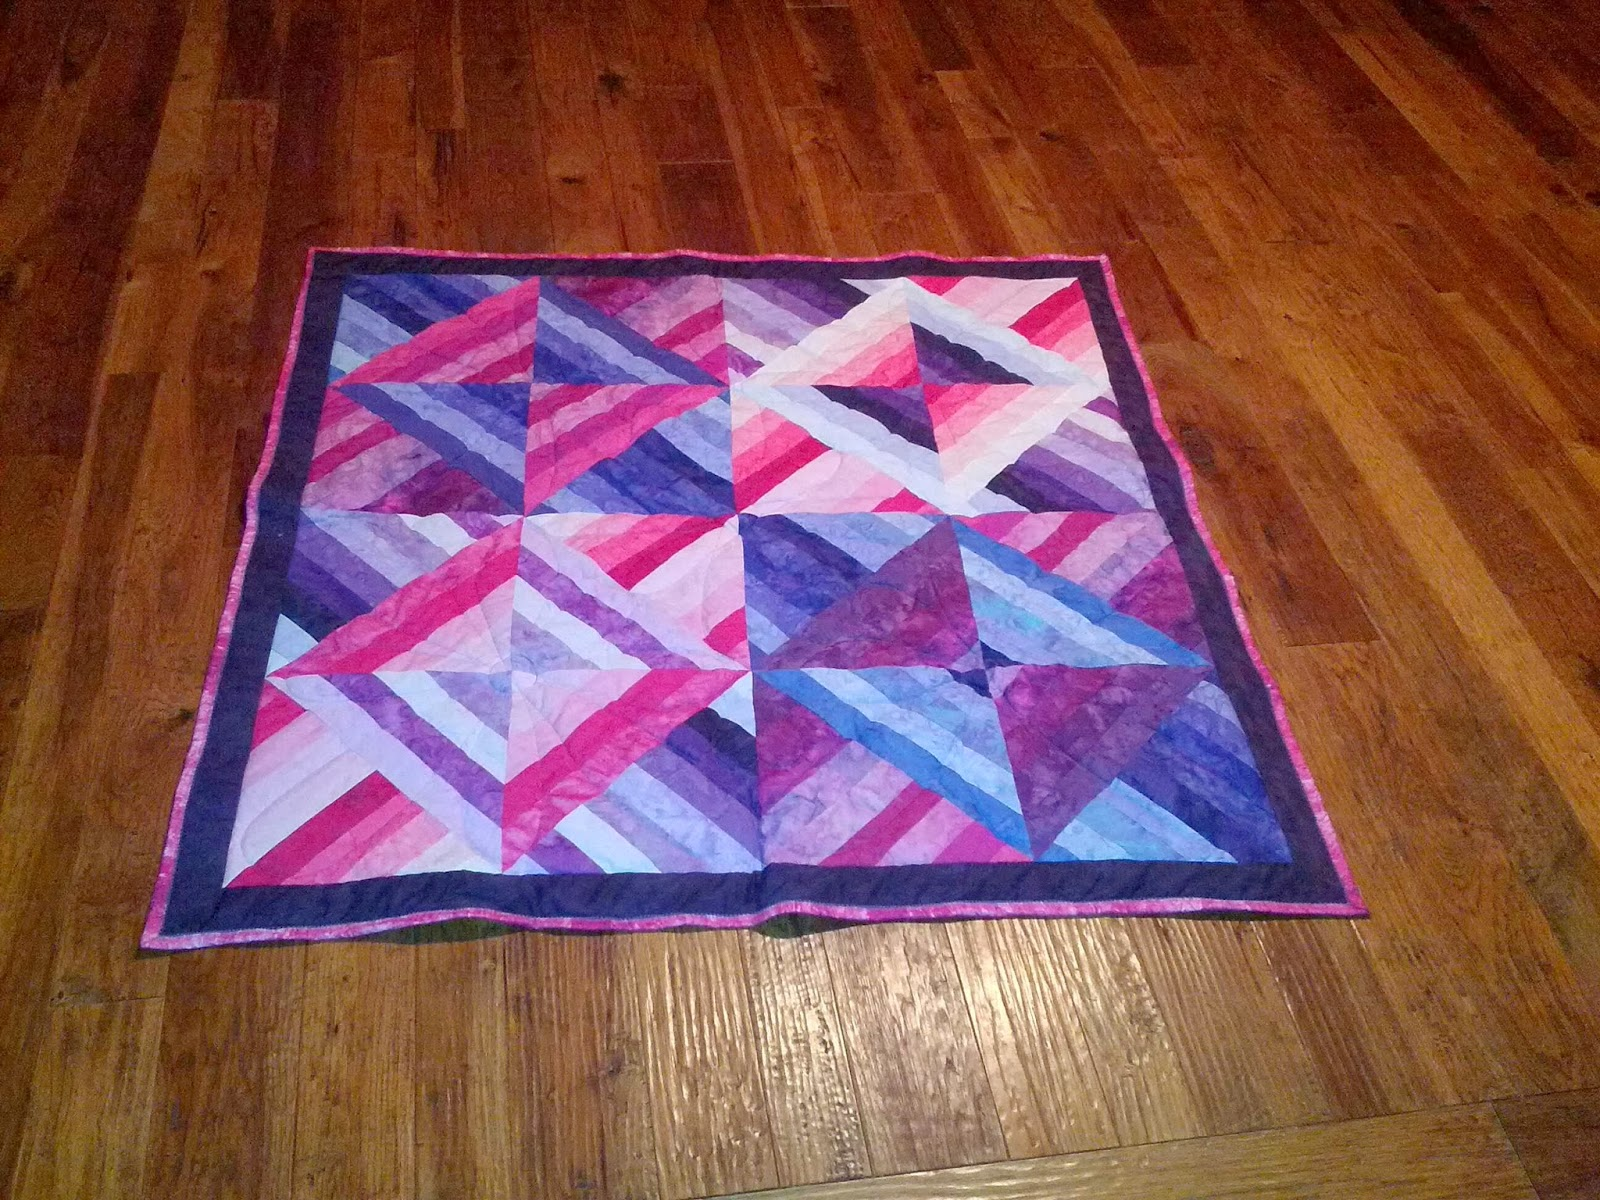 http://www.quiltparadigm.blogspot.com/2014/01/third-times-charm-right.html